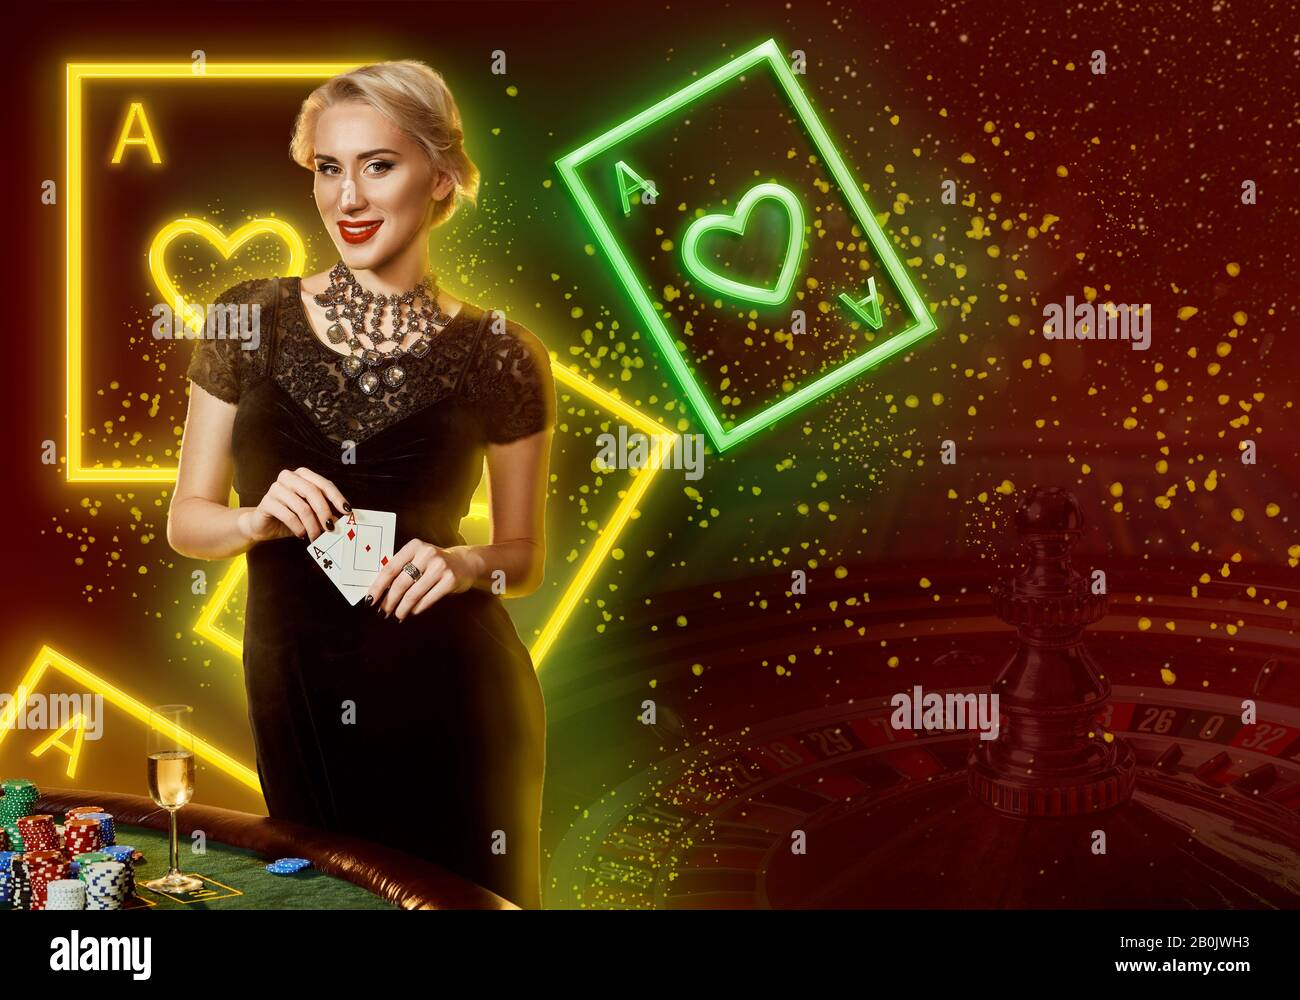 Girl In Black Dress Showing Aces Smiling Posing At Table With Chips Champagne Colorful Background With Neon Playing Cards Roulette Poker Casino Stock Photo Alamy